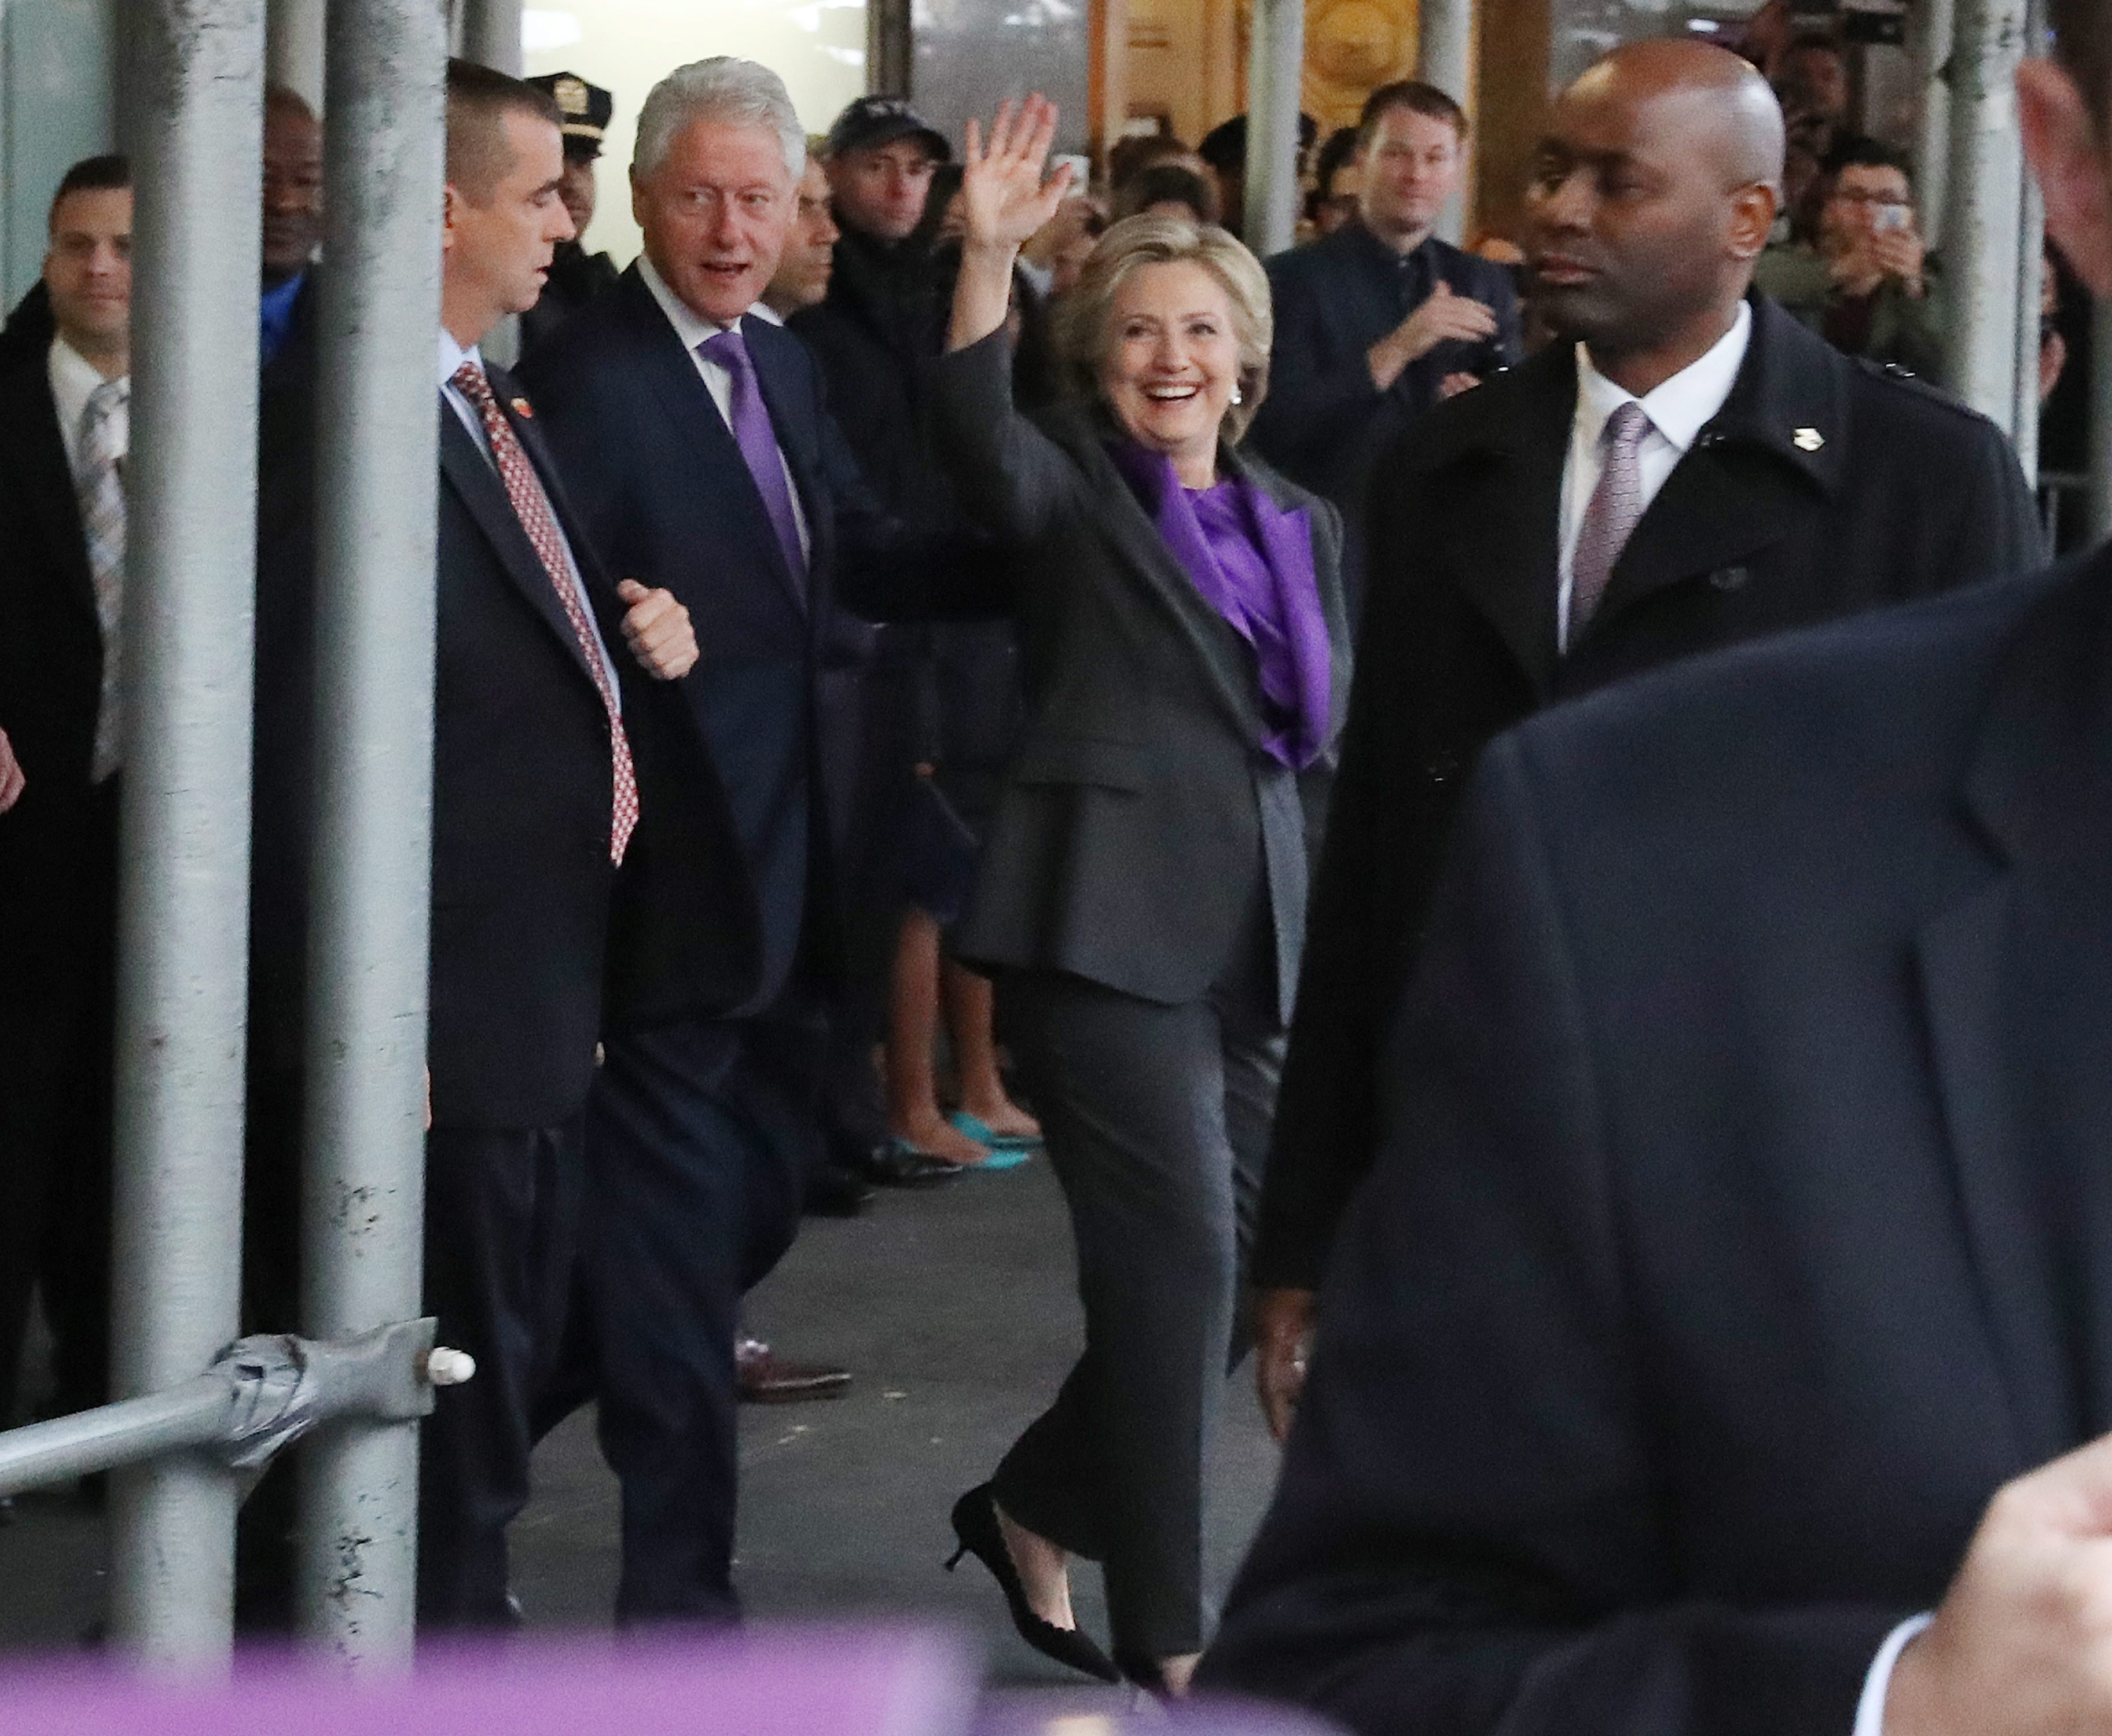 epa05624509 US Democratic Party presidential nominee Hillary Clinton (R) and former US President Bill Clinton (L) wave as they leave following a speech to supporters and staff after her defeat to Republican Party nomine